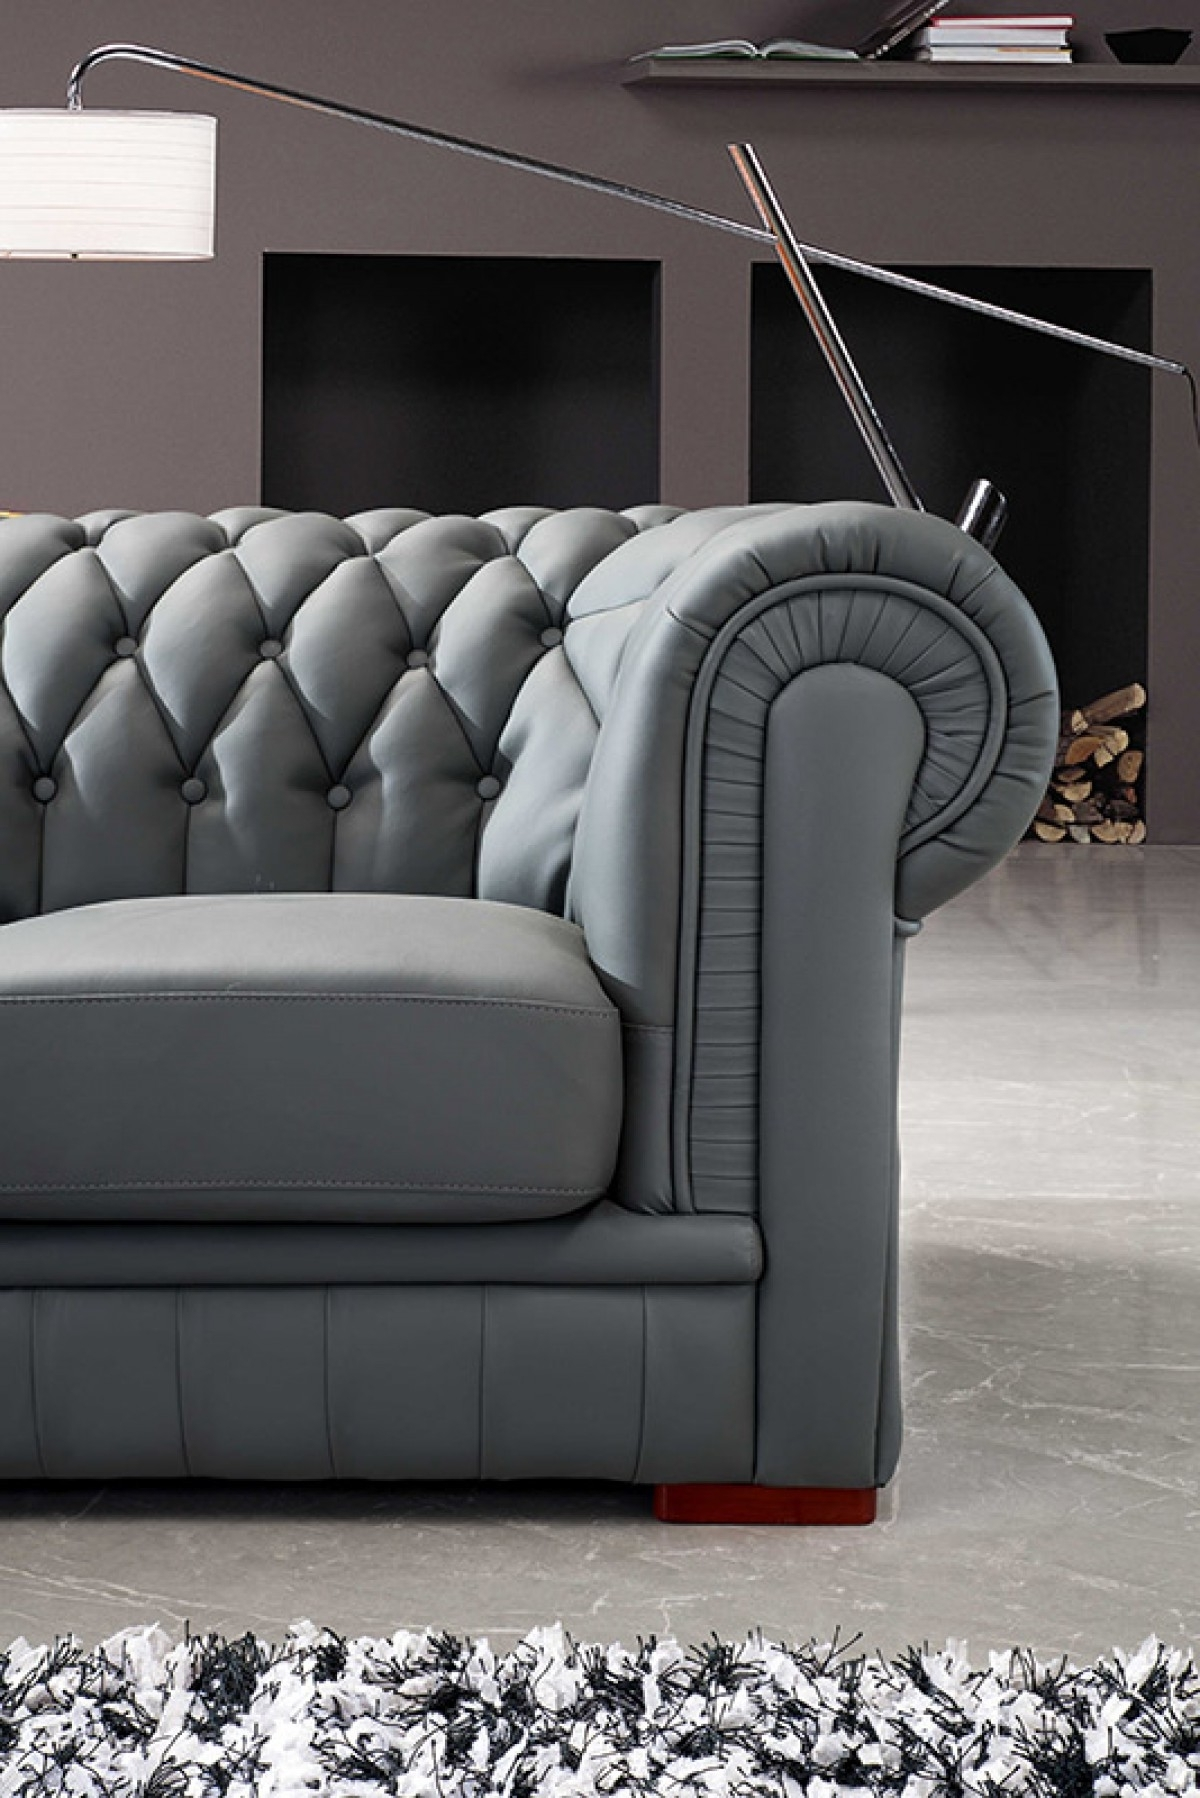 Newest Wayfair Sectional Sofa – Home Design Ideas And Pictures Throughout Wayfair Sectional Sofas (View 8 of 15)